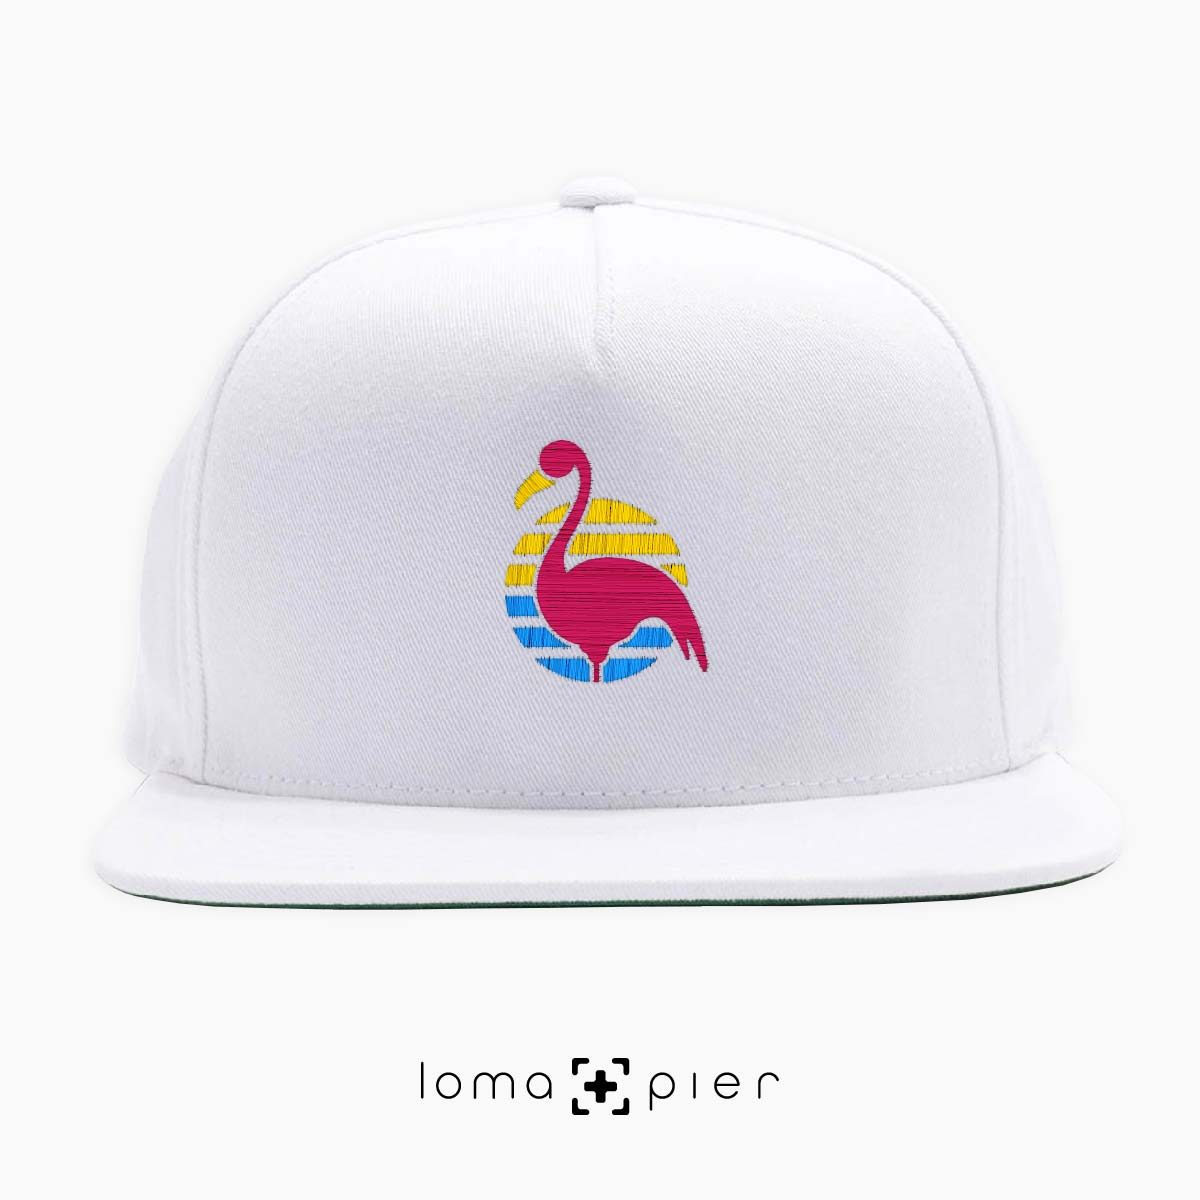 FLAMINGO icon embroidered on a white classic snapback hat by loma+pier hat store